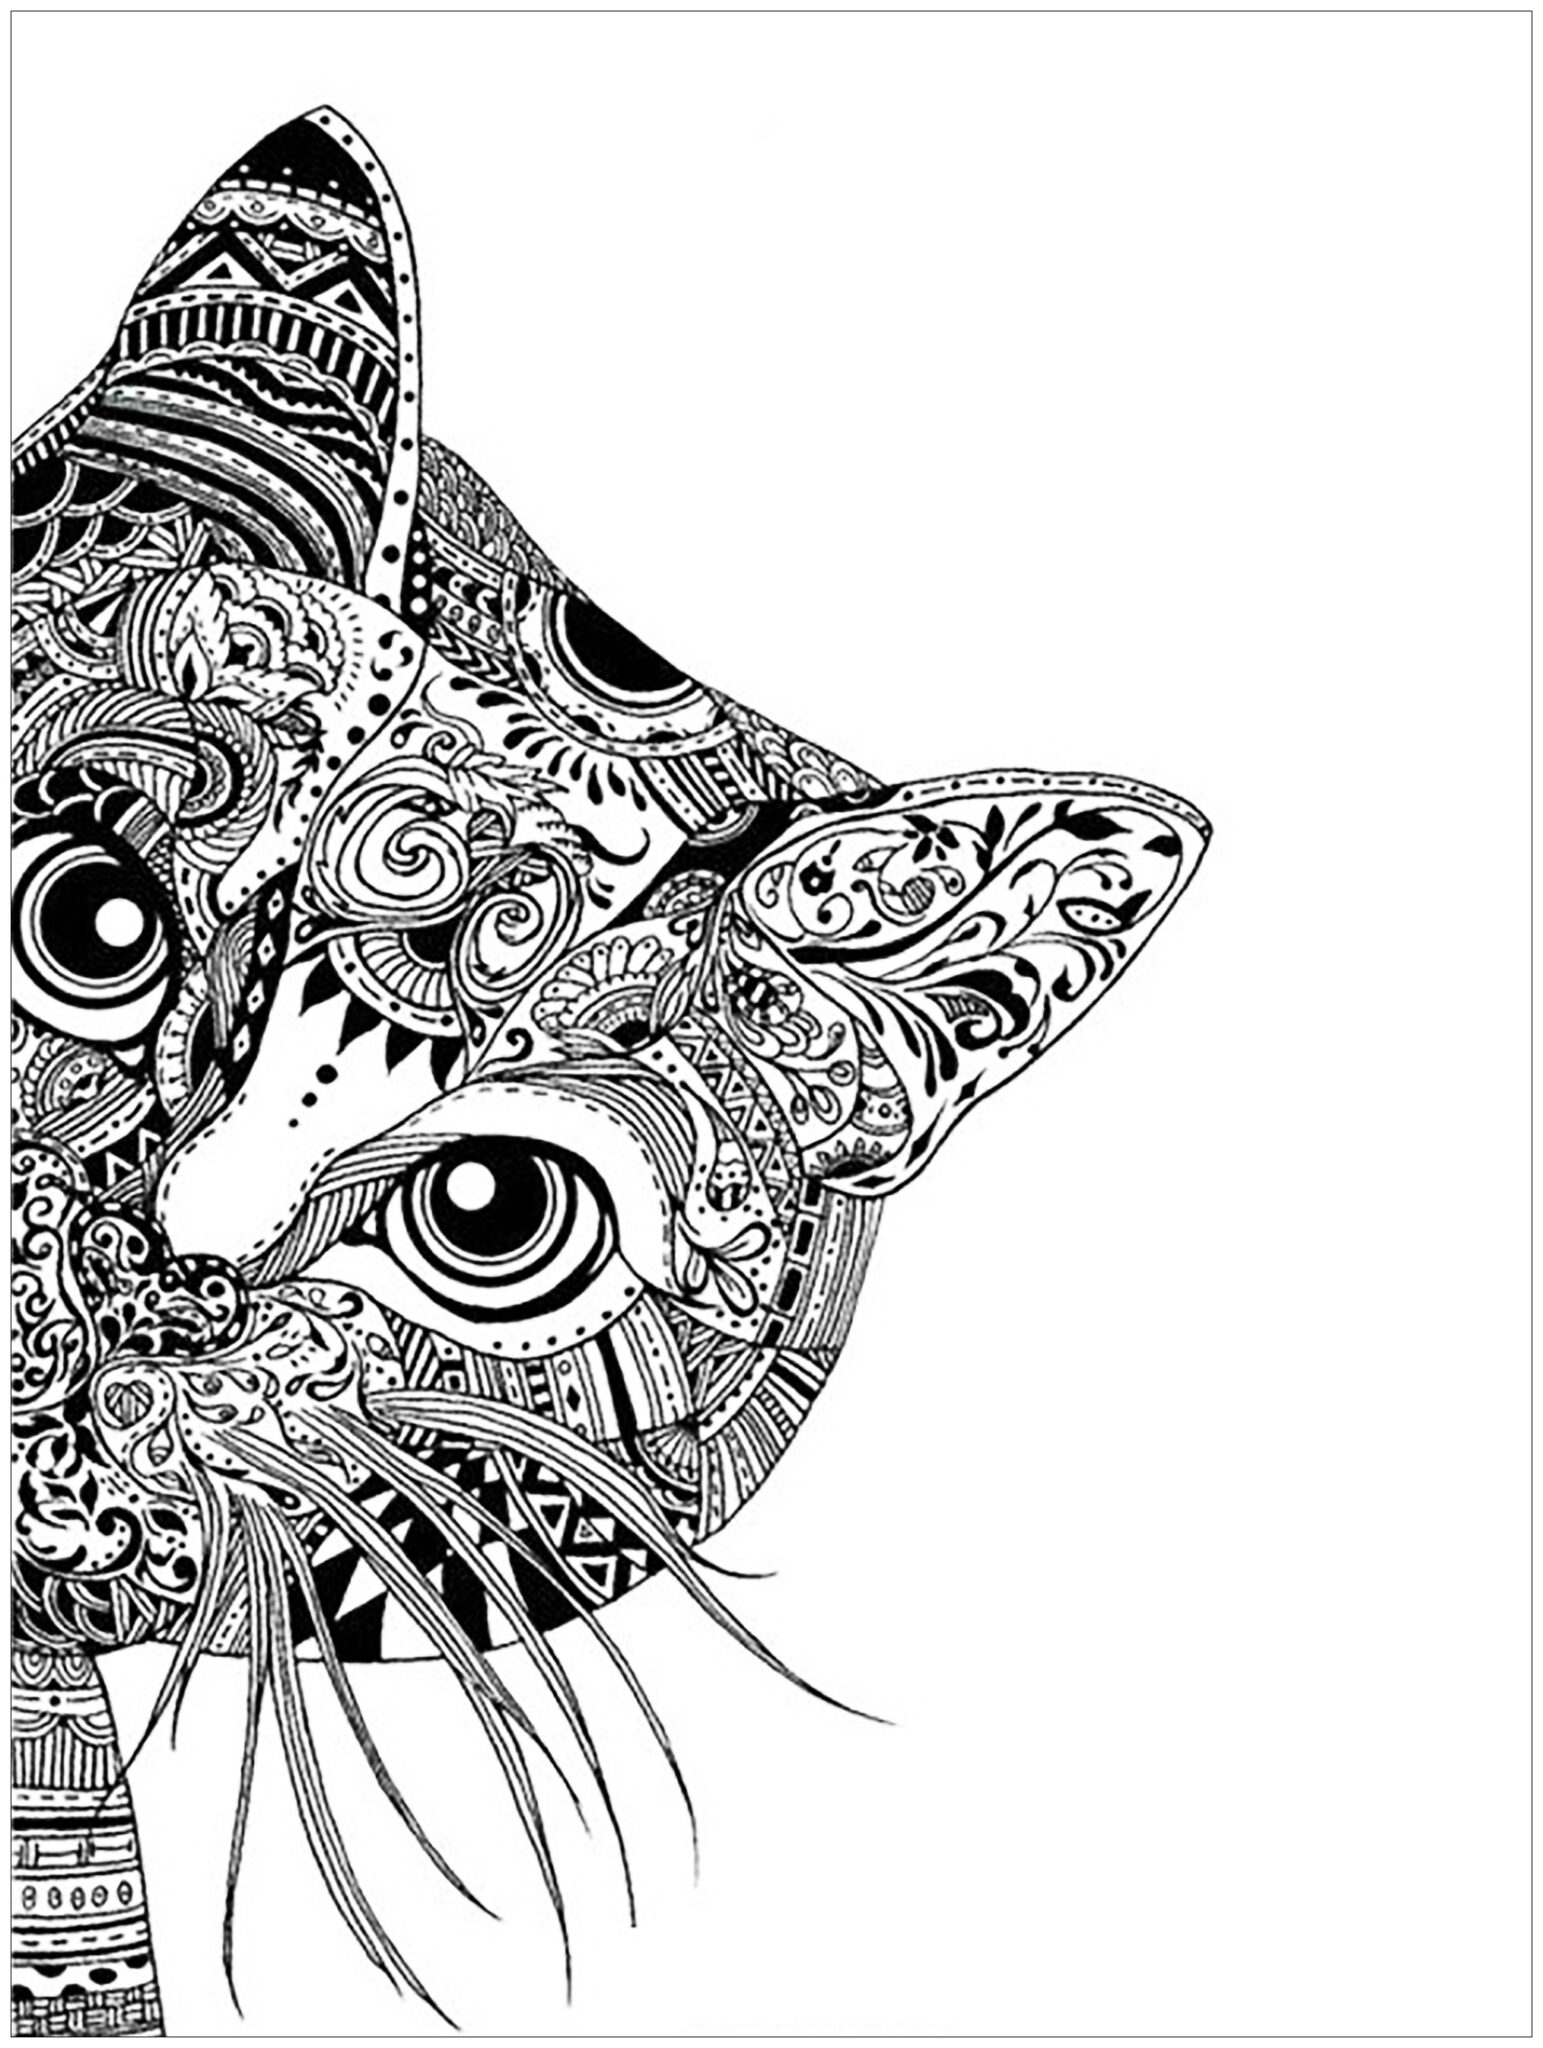 Cats coloring pages for adult 2